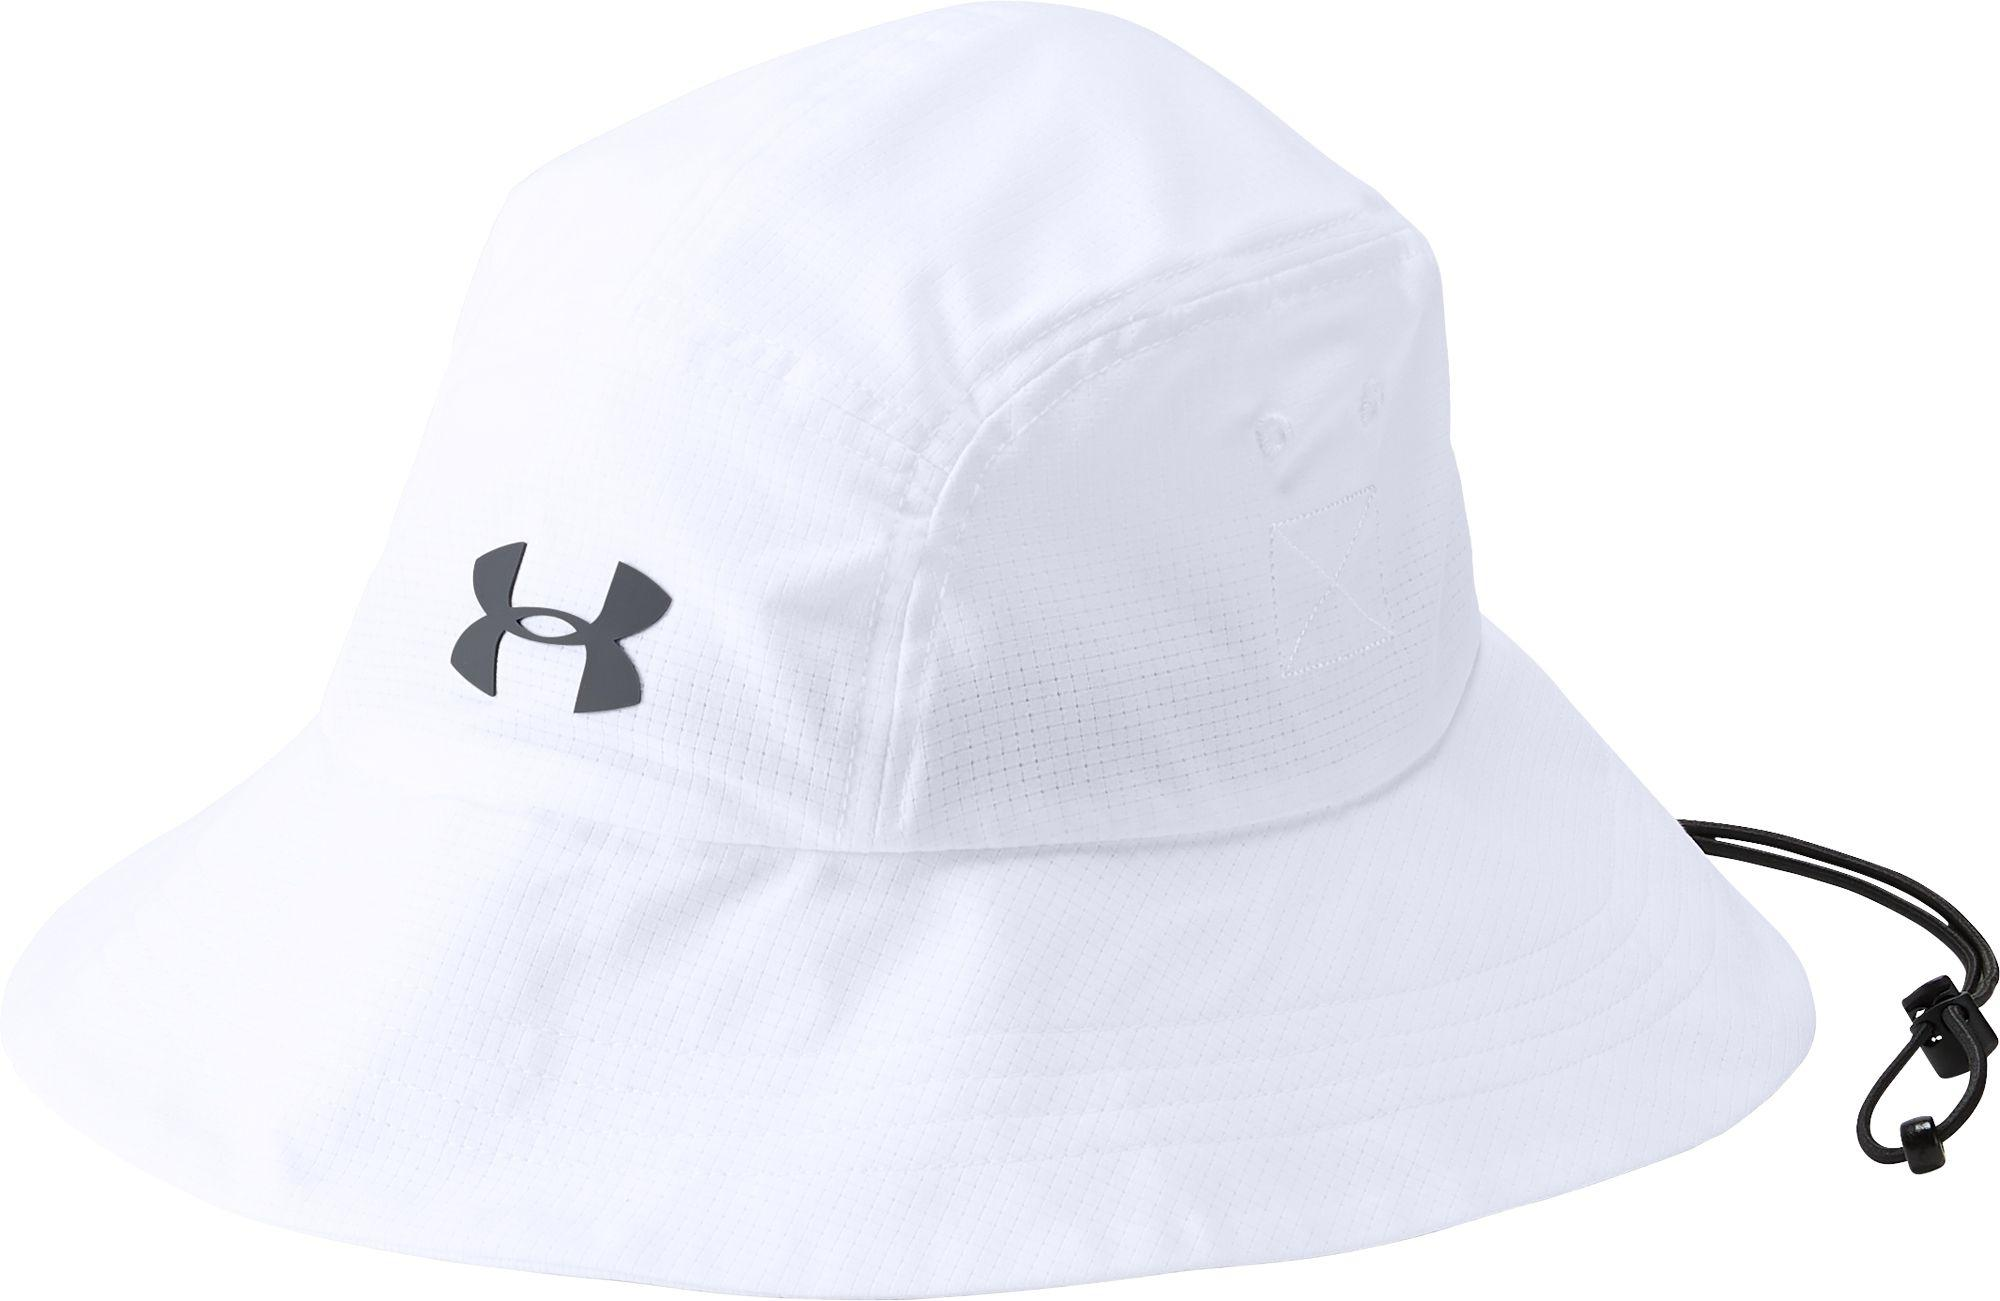 Lyst - Under Armour Armourvent Warrior 2.0 Bucket Hat in White for Men f77fed9f245f